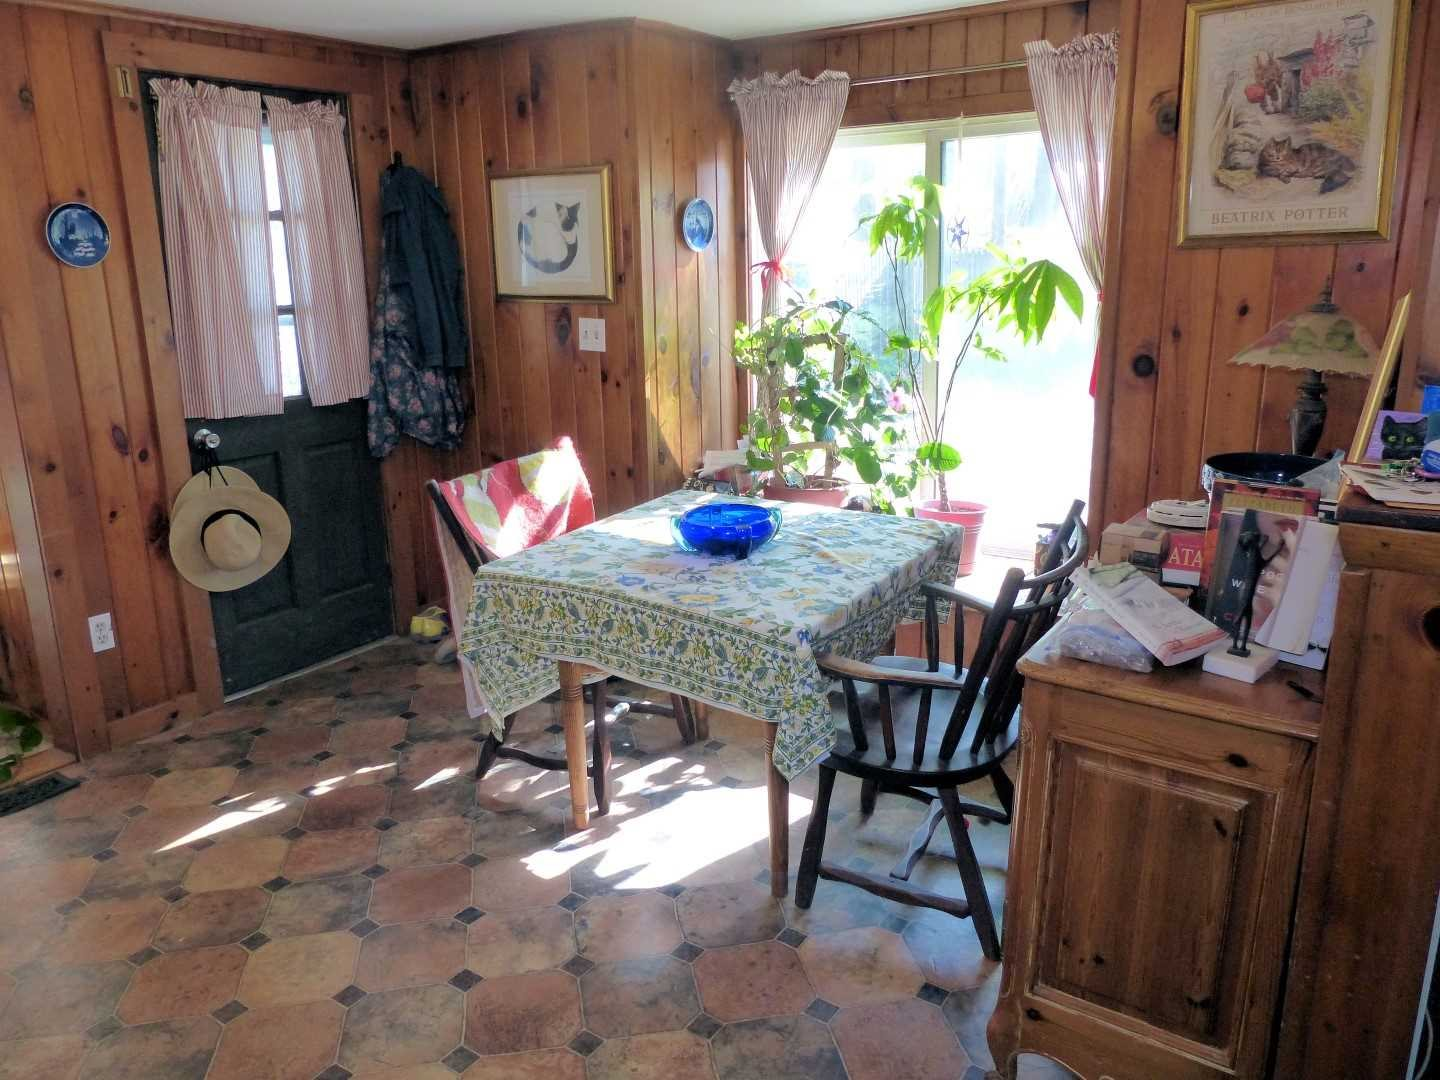 Additional photo for property listing at 52 CENTER Street 52 CENTER Street Millerton, New York 12546 United States